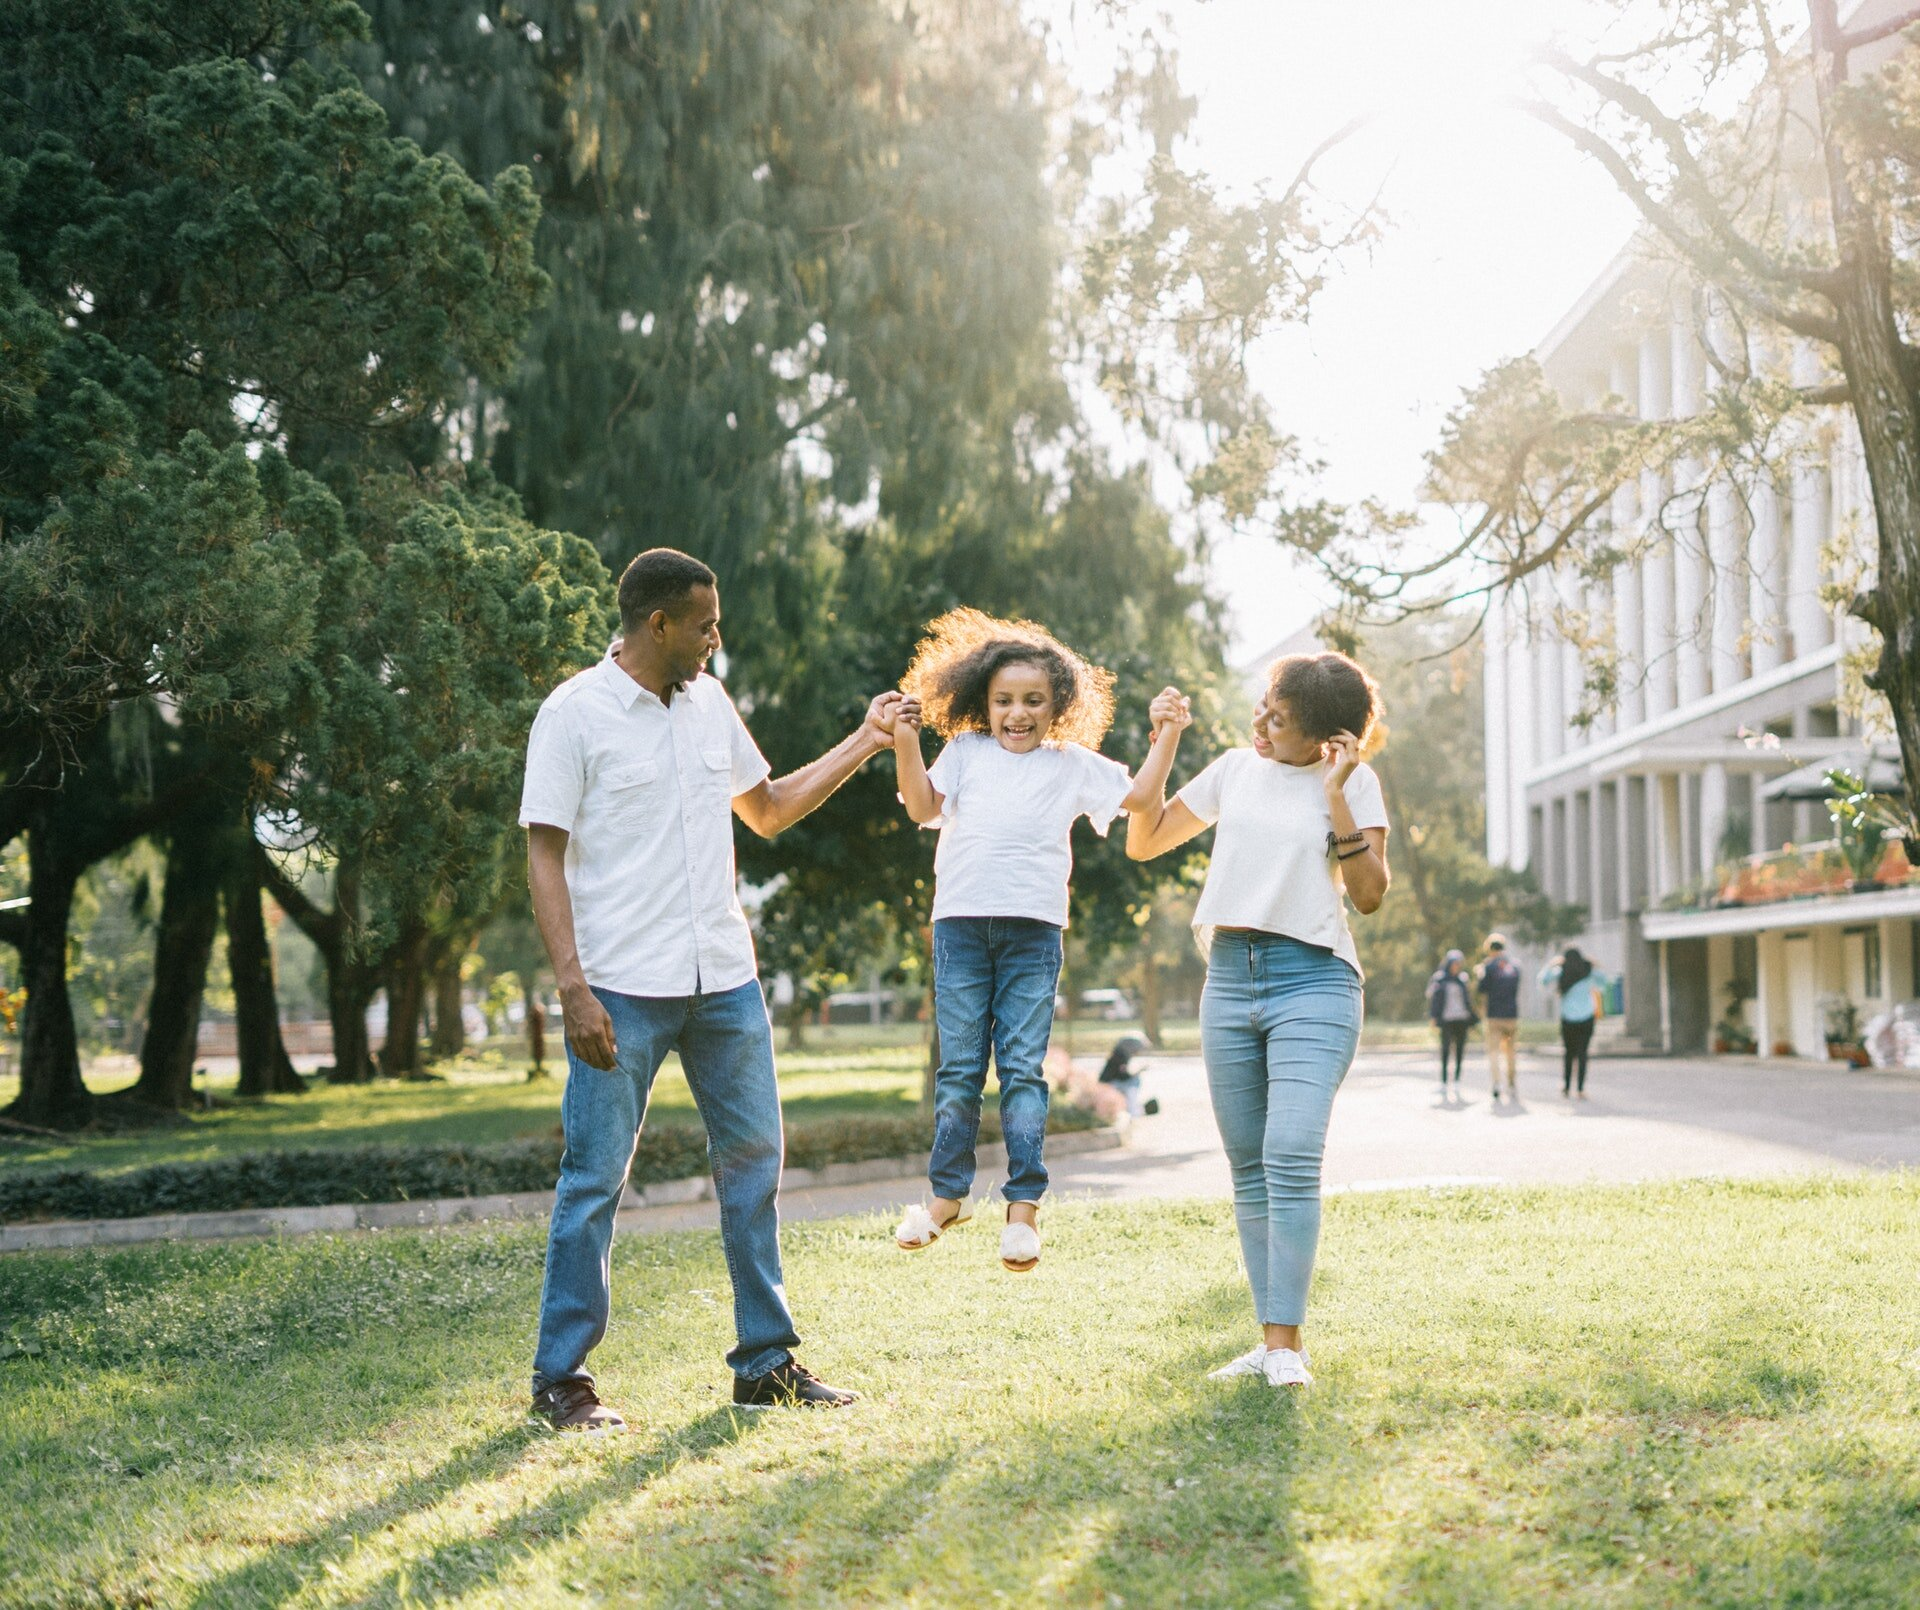 Estate Planning for Young Families - A comprehensive risk management and emergency planning program aimed at peace of mind and financial security for young parents.Click here to learn more…